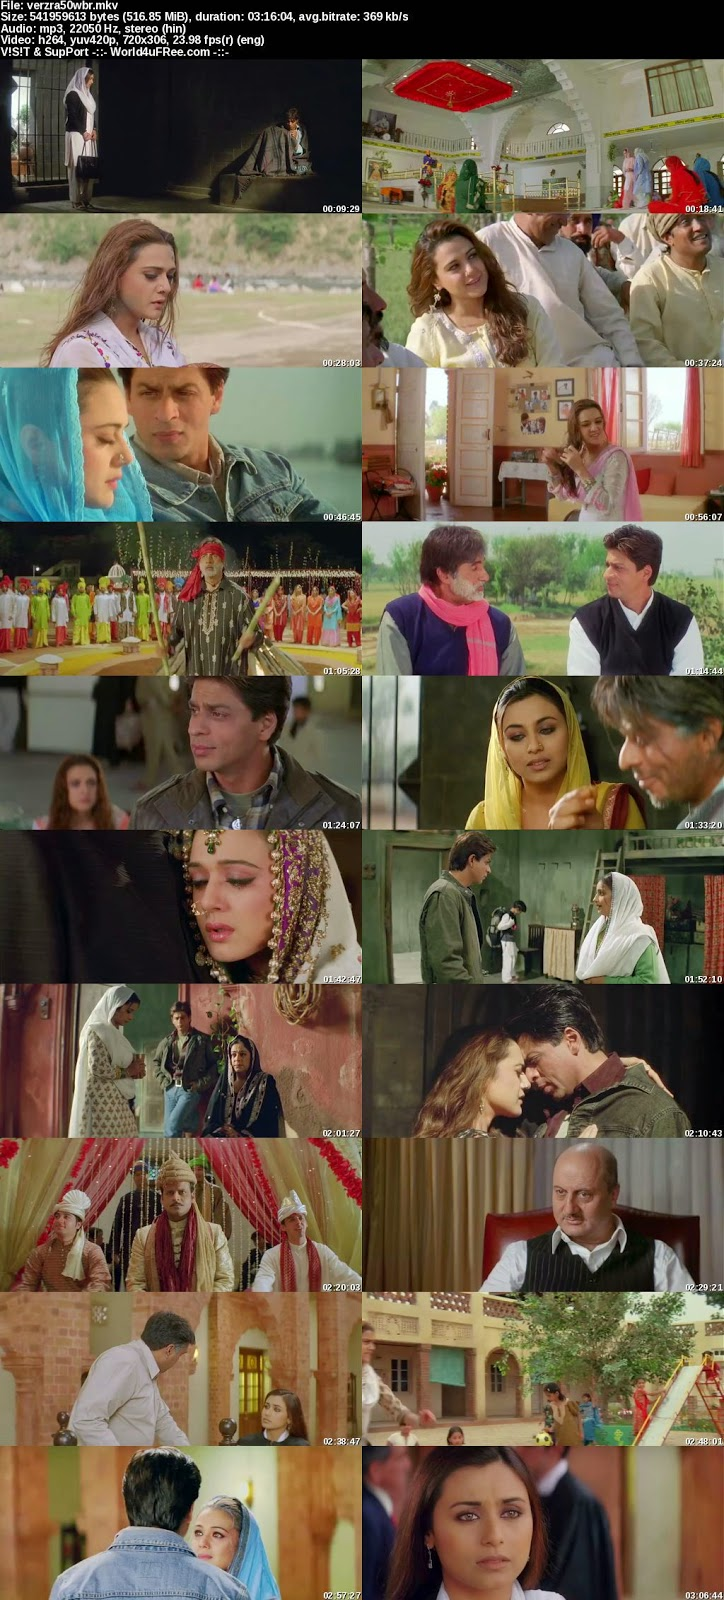 Free download veer zaara hd movie wallpaper #6.